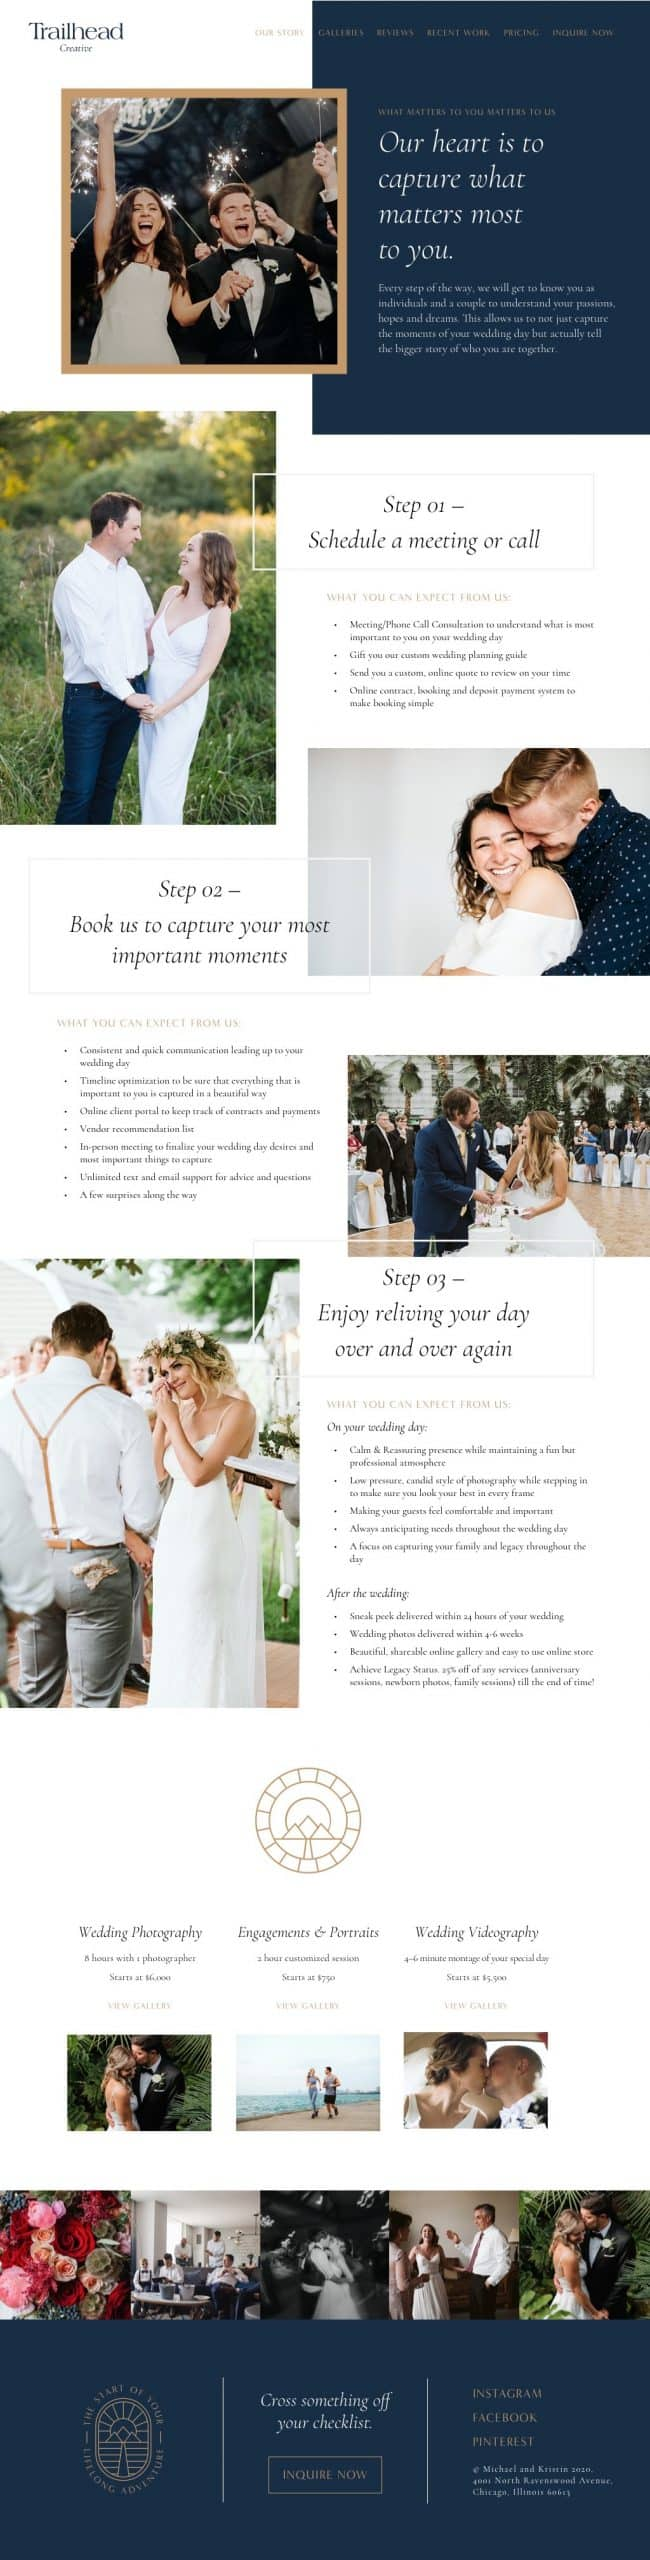 Experience and pricing page website design for wedding photography studio, Trailhead Creative